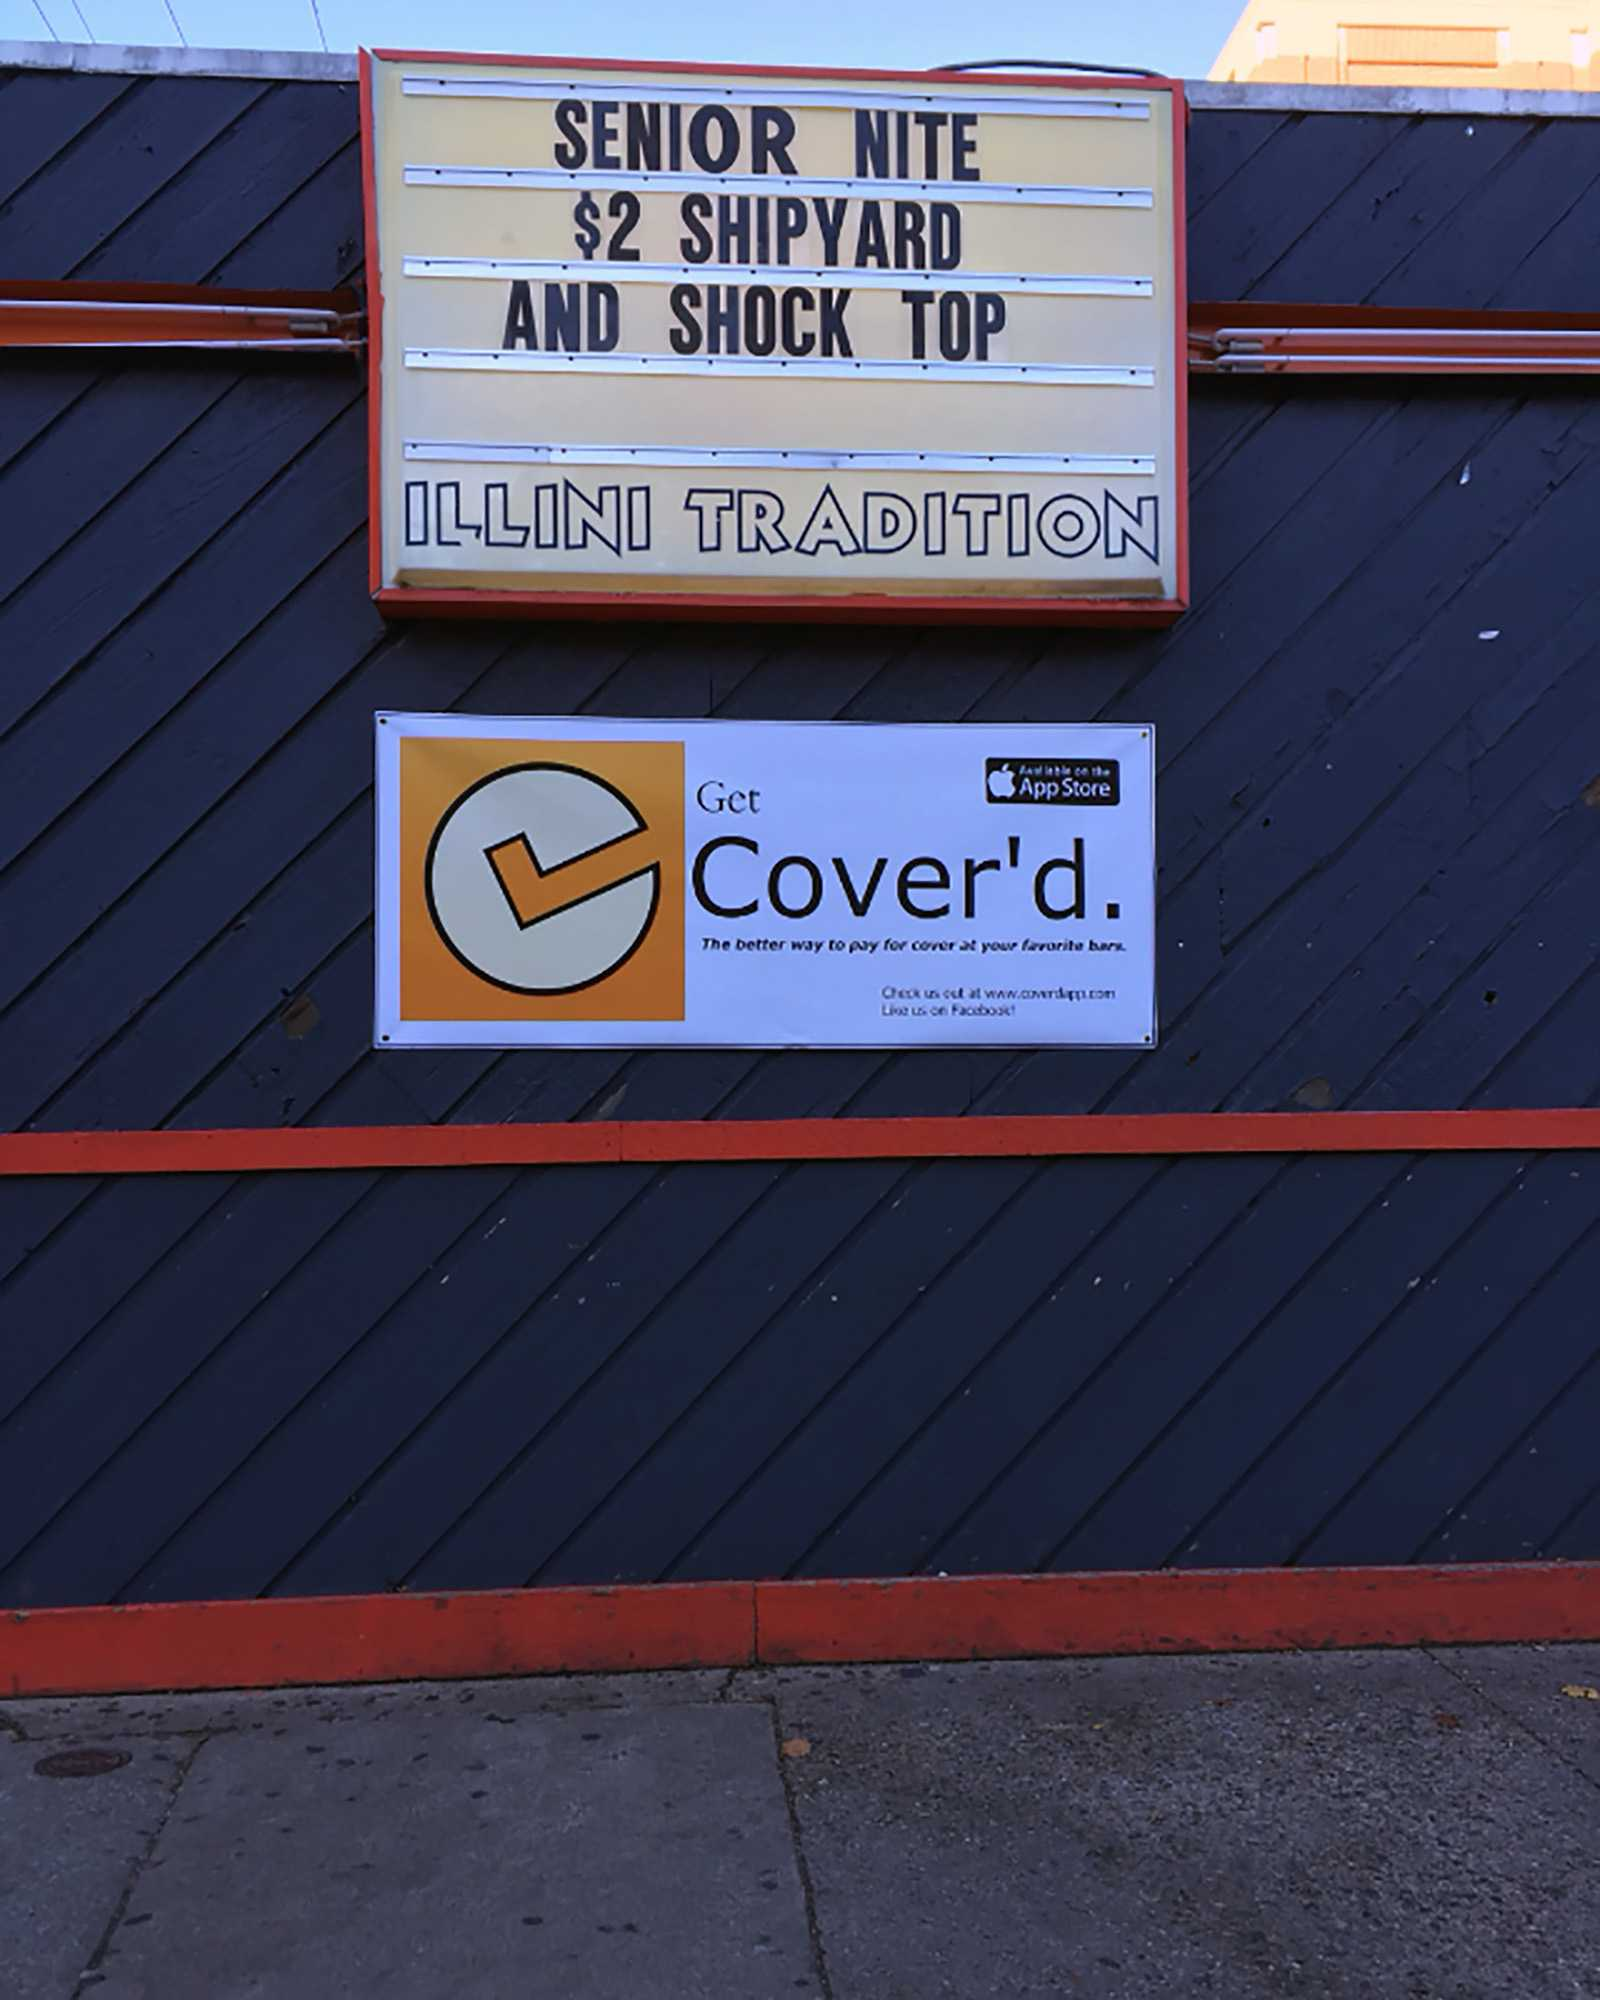 Cover'd is a new app created by University students that lets users pay for cover to get into Kam's digitally.